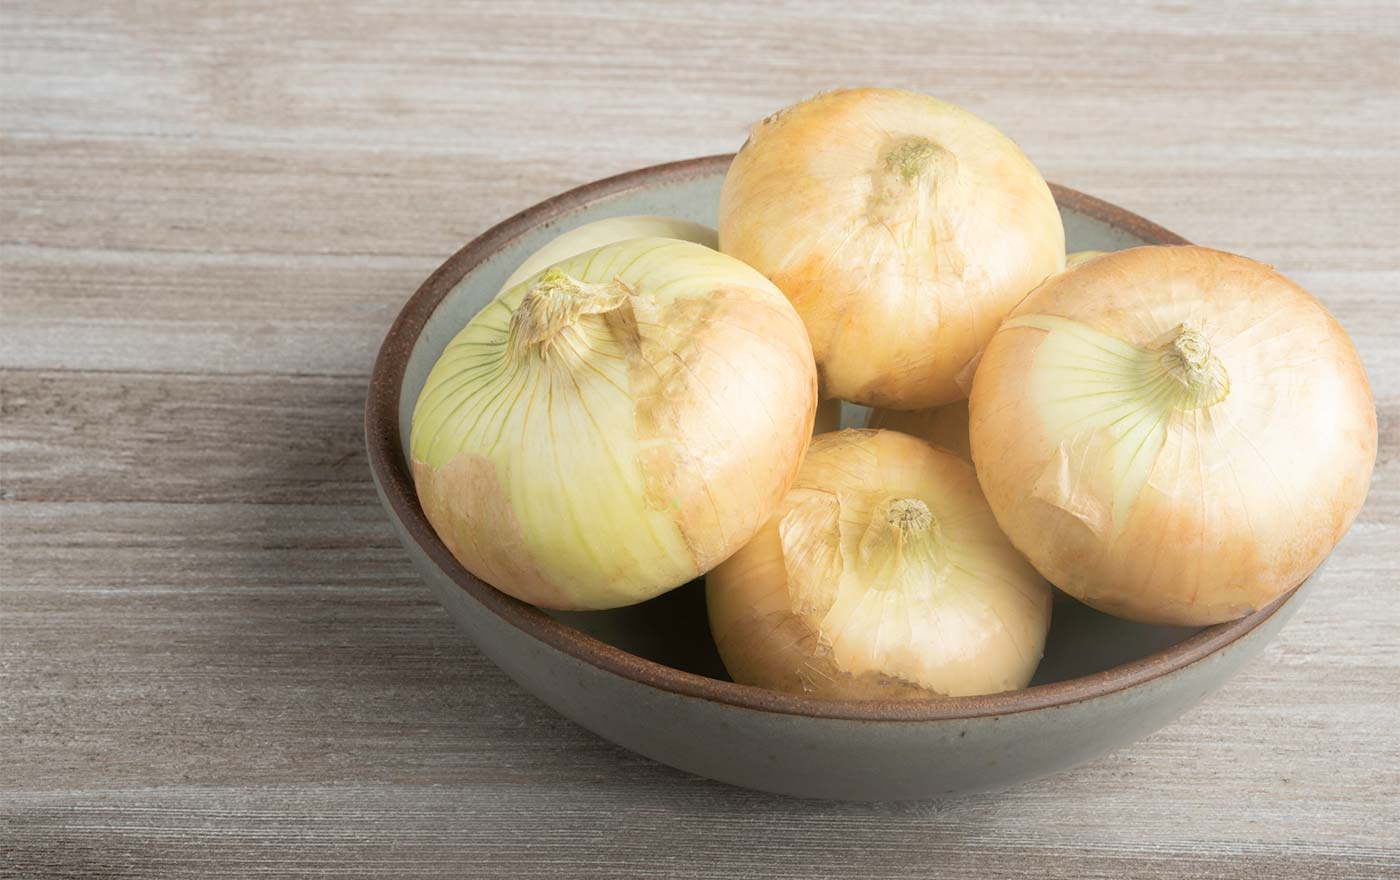 Vidalia Onions in a bowl